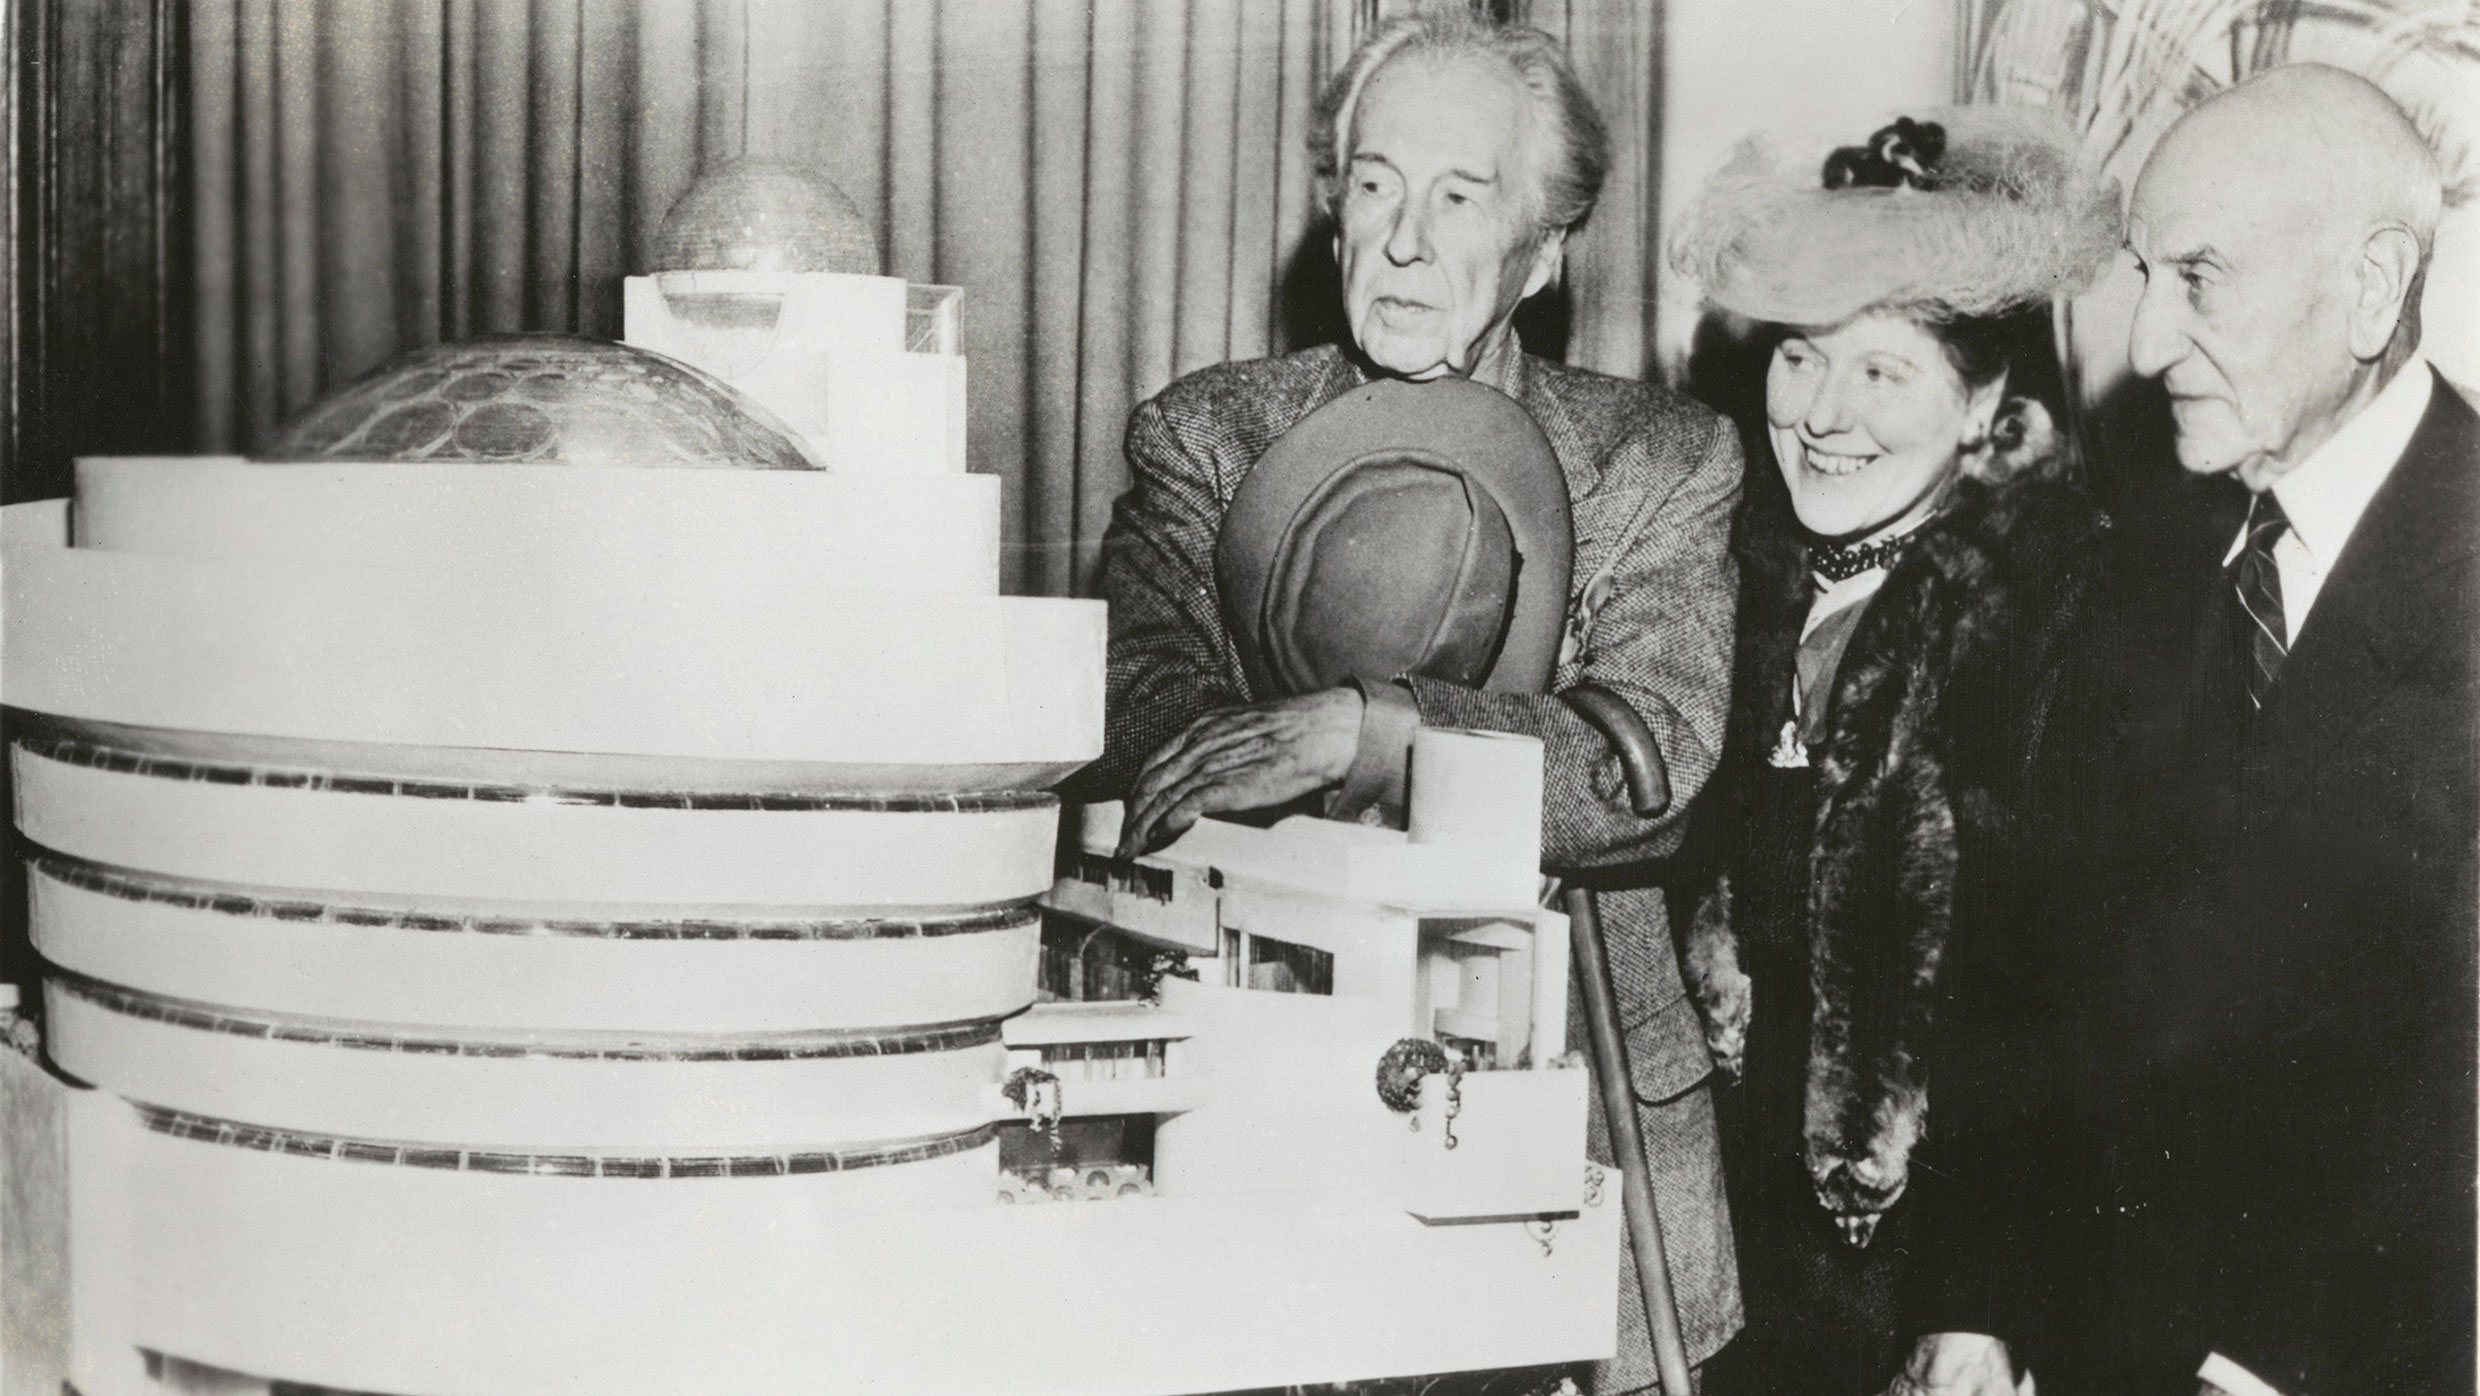 Frank Lloyd Wright, Hilla Rebay, and Solomon Guggenheim with a model of Wright's design for the new museum, Plaza Hotel, New York, 1945. Photo: Margaret Carlson, courtesy Library of Congress, Washington, D.C.